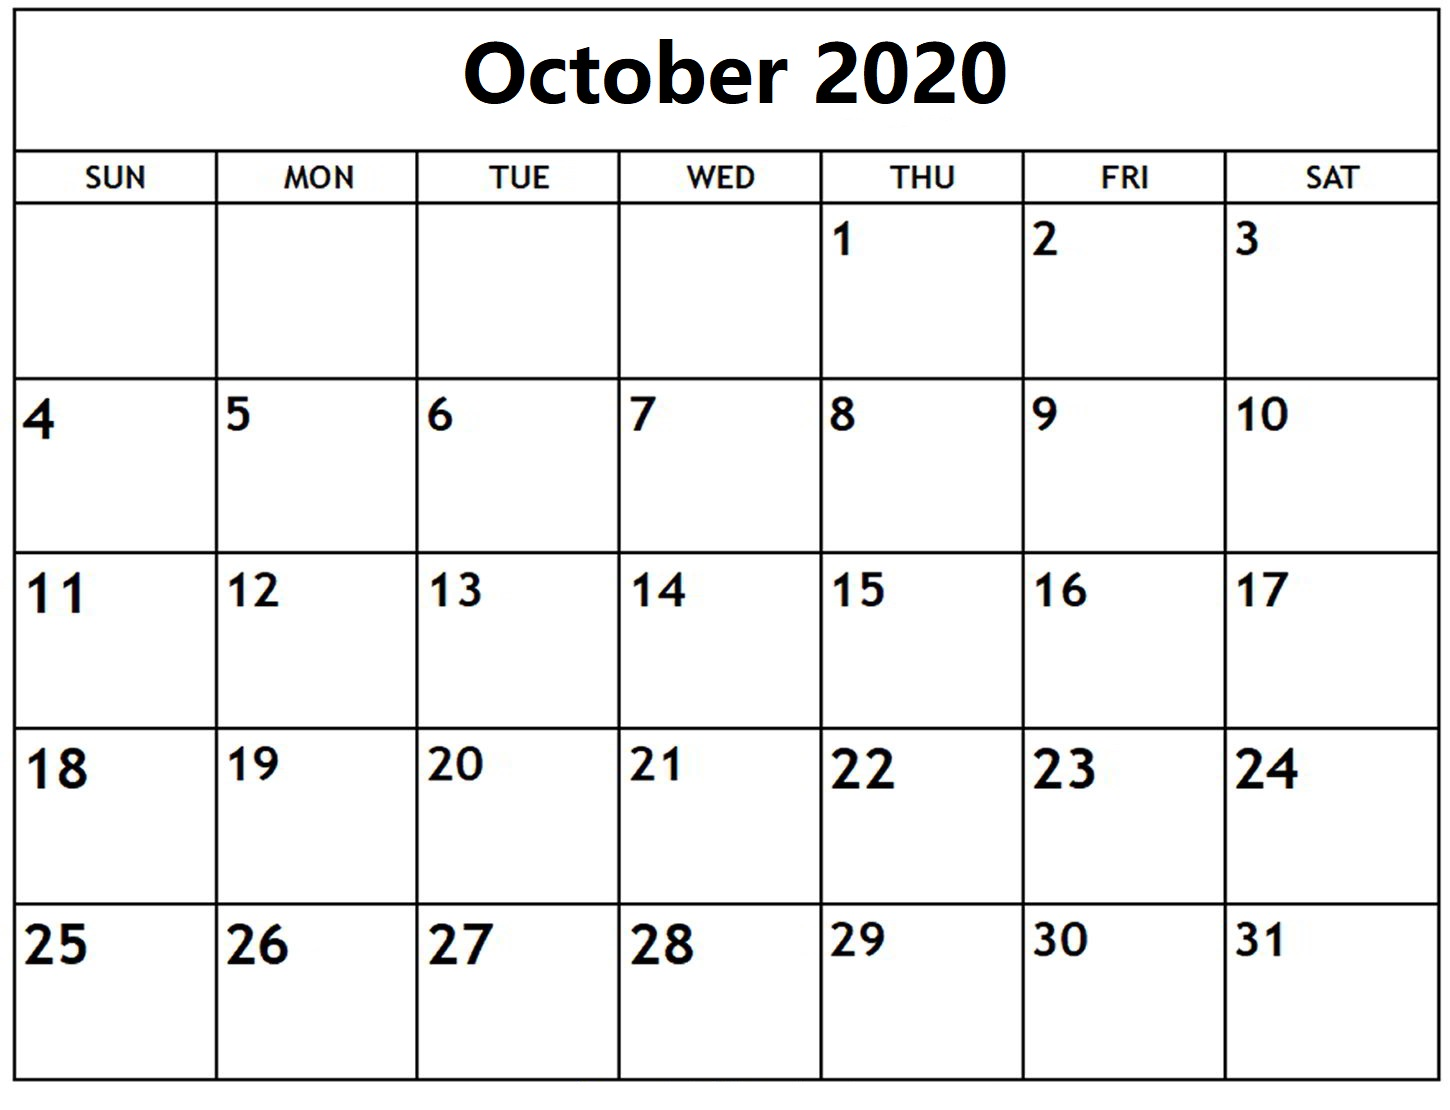 October 2020 Calendar Template With Holidays